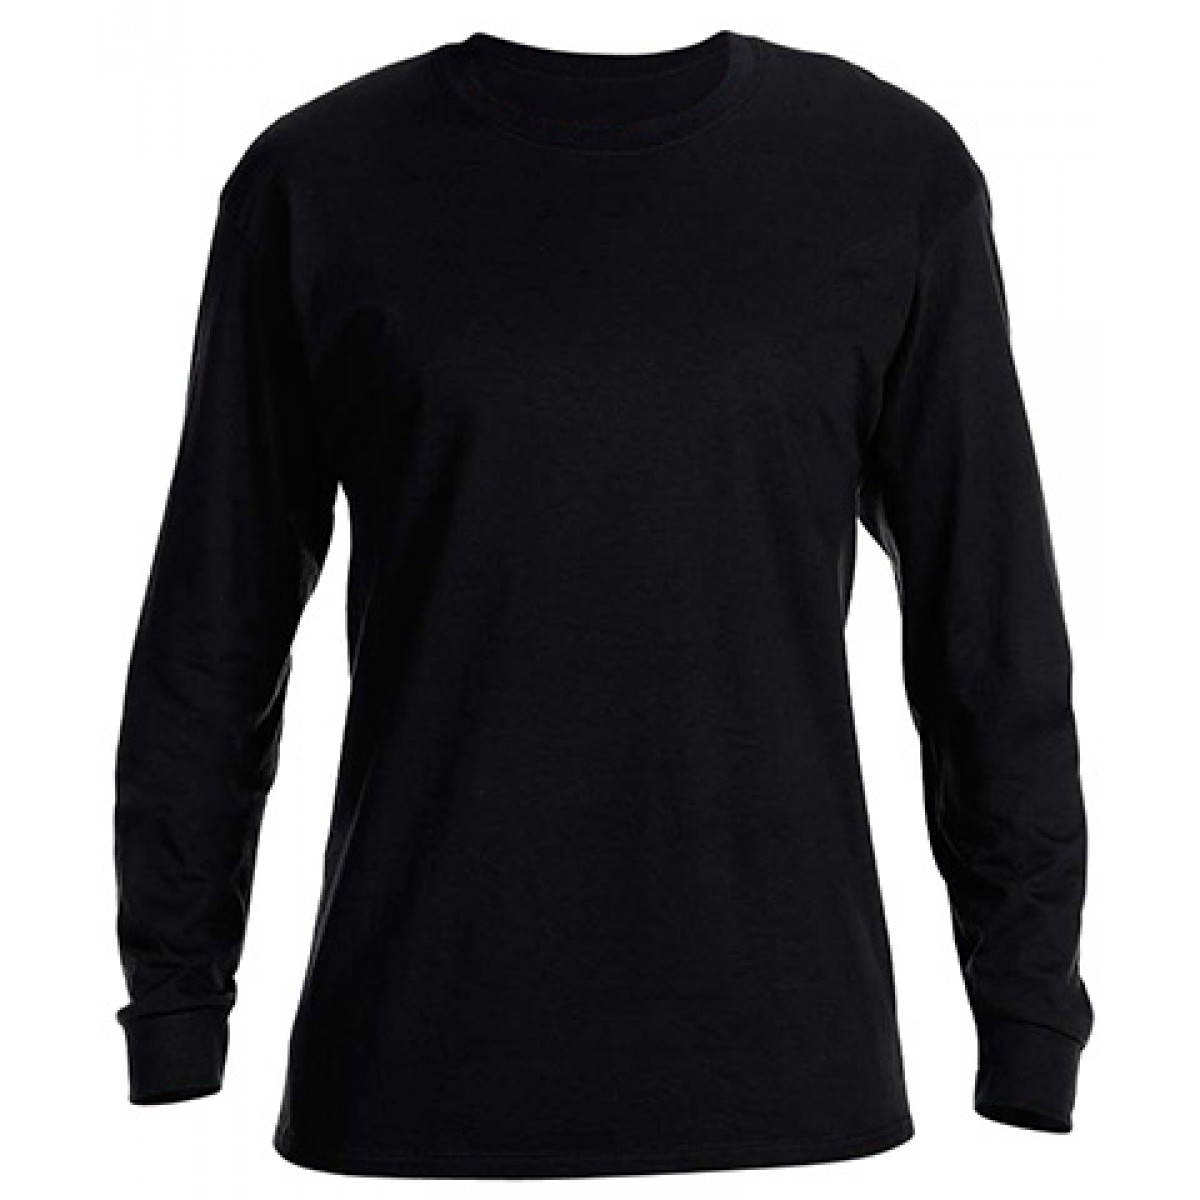 Basic Long Sleeve Crew Neck -Black-M